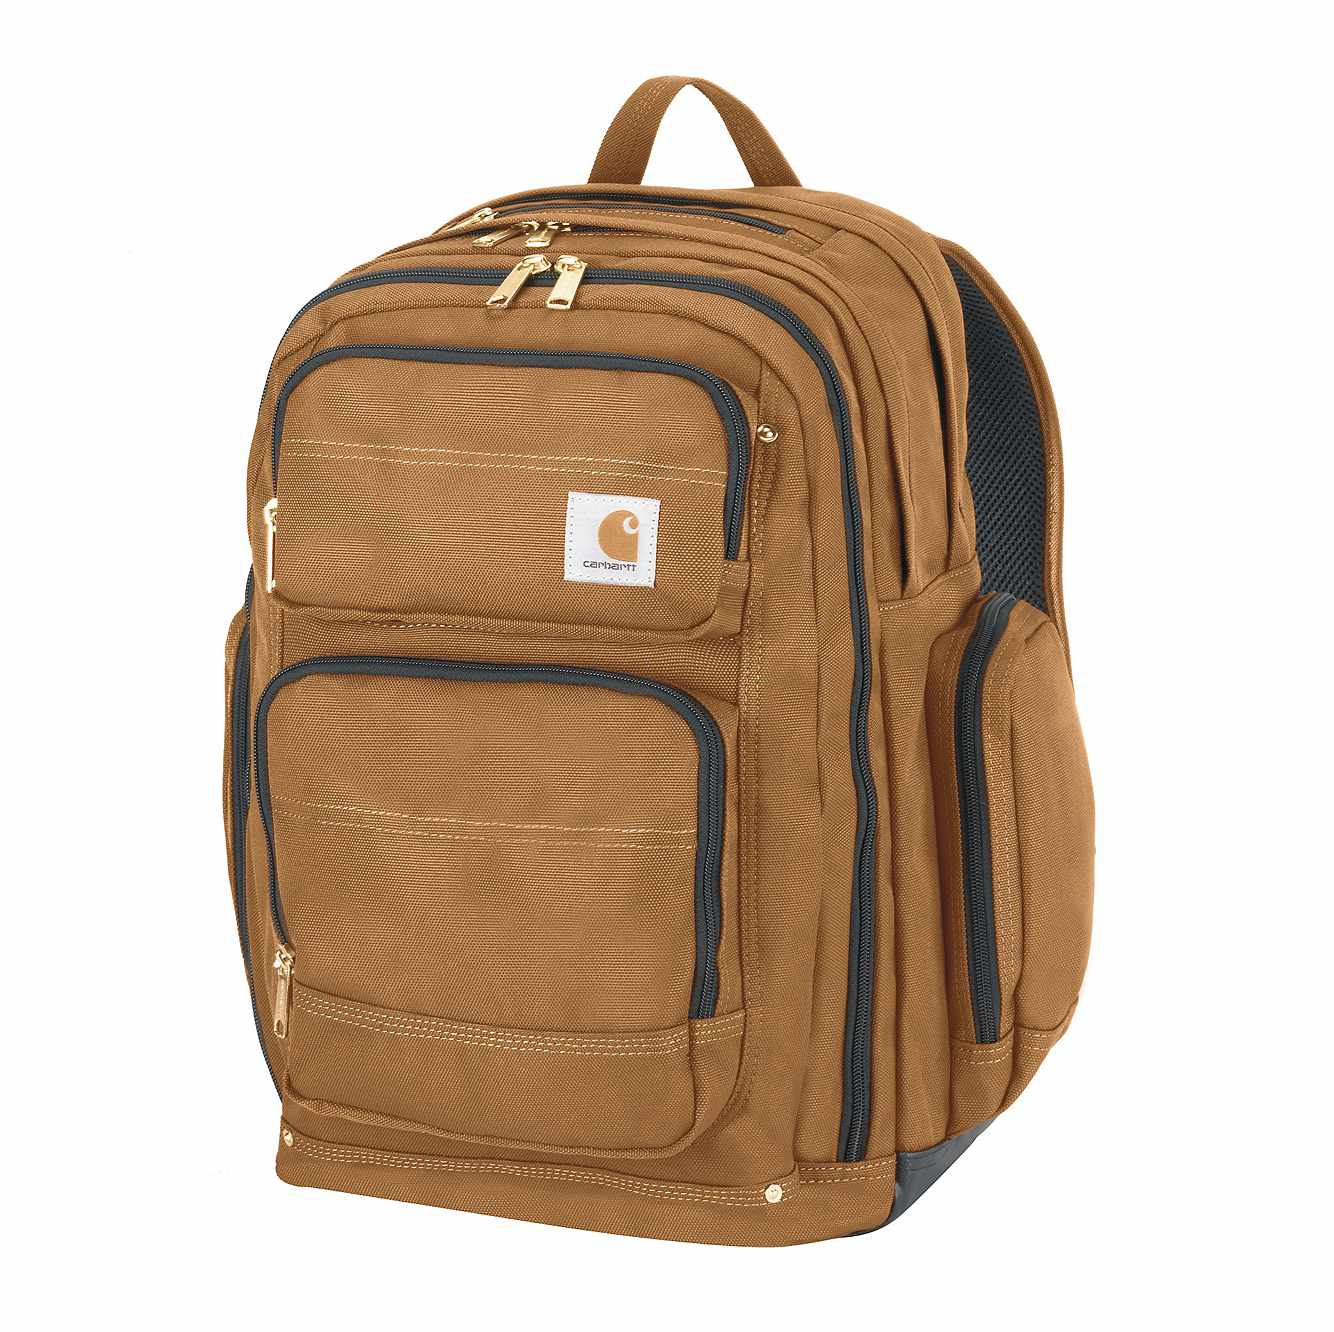 Picture of Legacy Deluxe Work Pack in Carhartt Brown